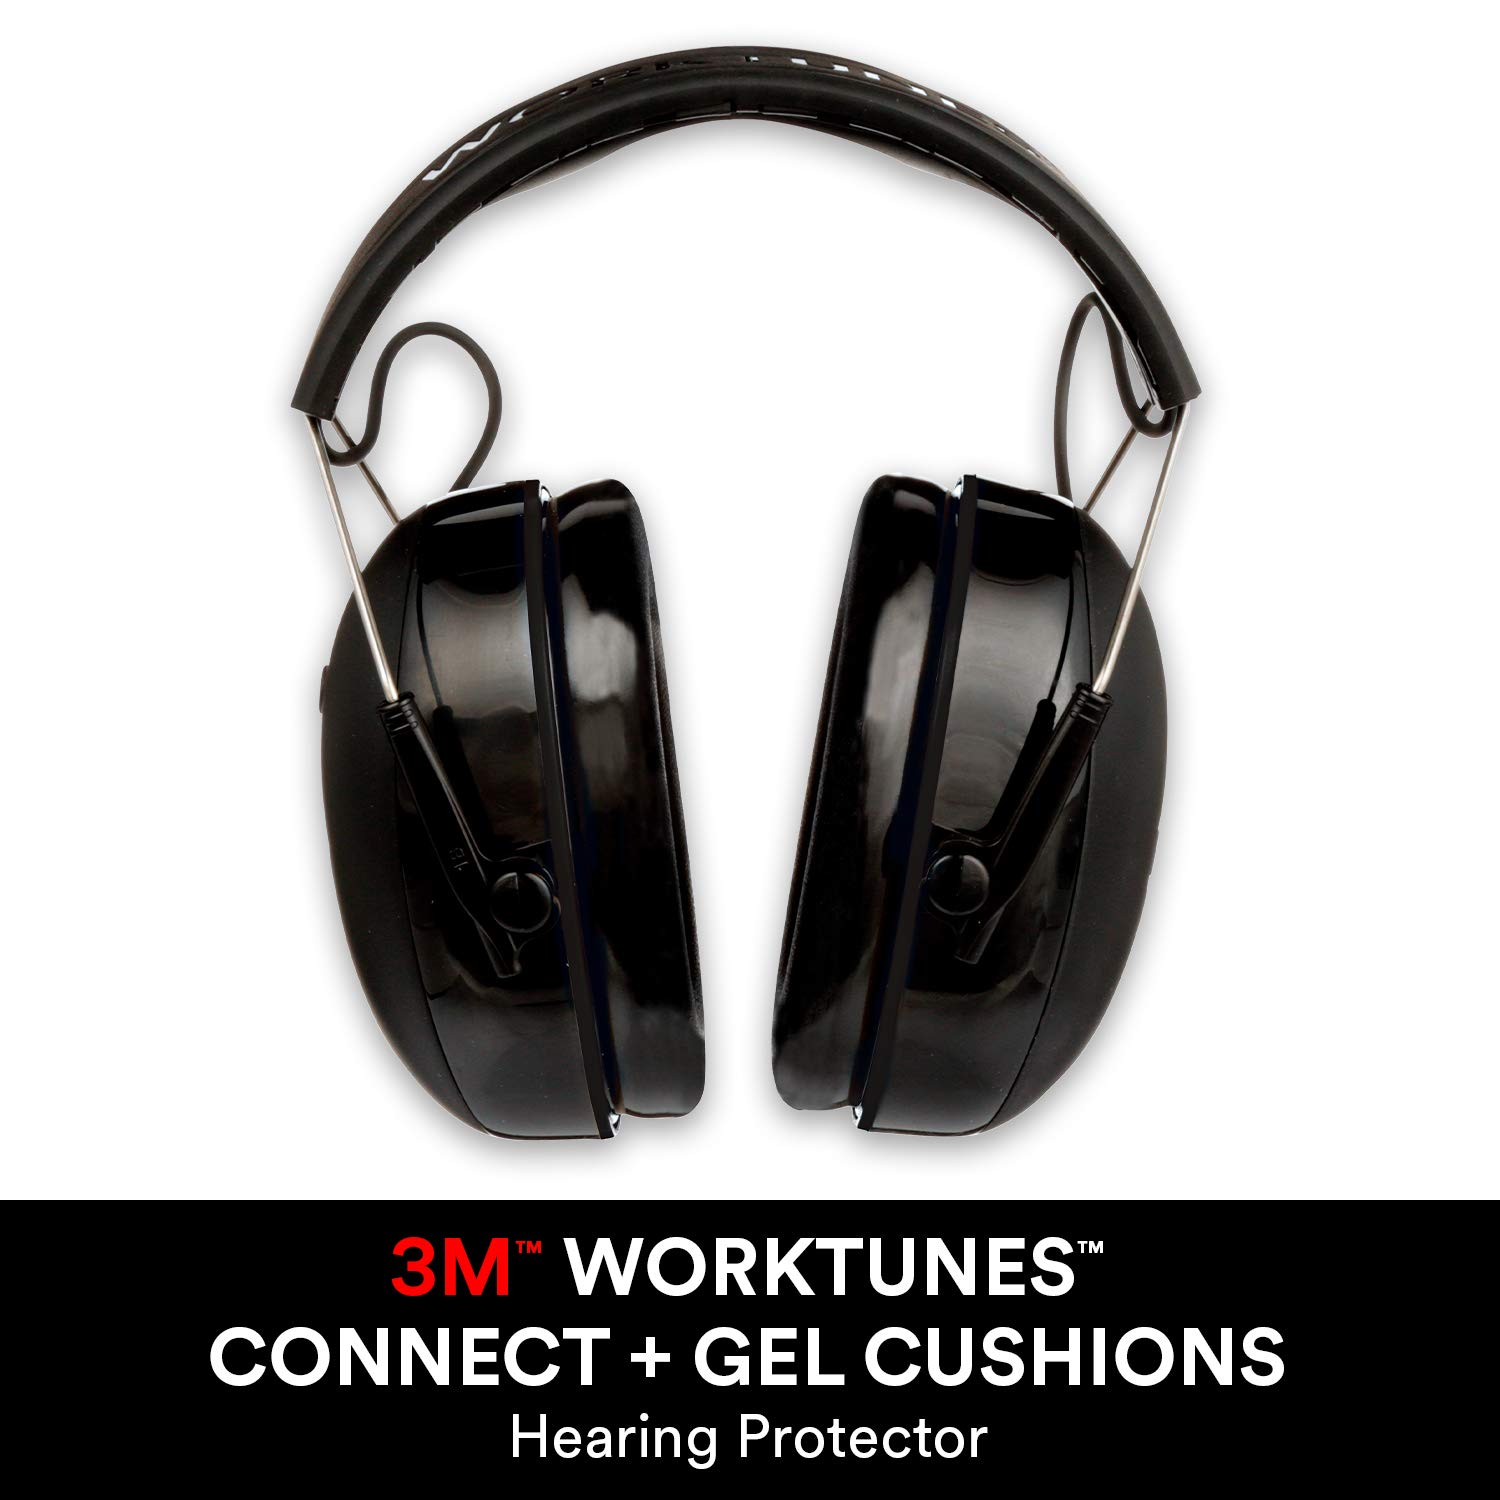 3M WorkTunes Connect + Gel Cushions Wireless Hearing Protector with Bluetooth Technology by 3M SAFETY